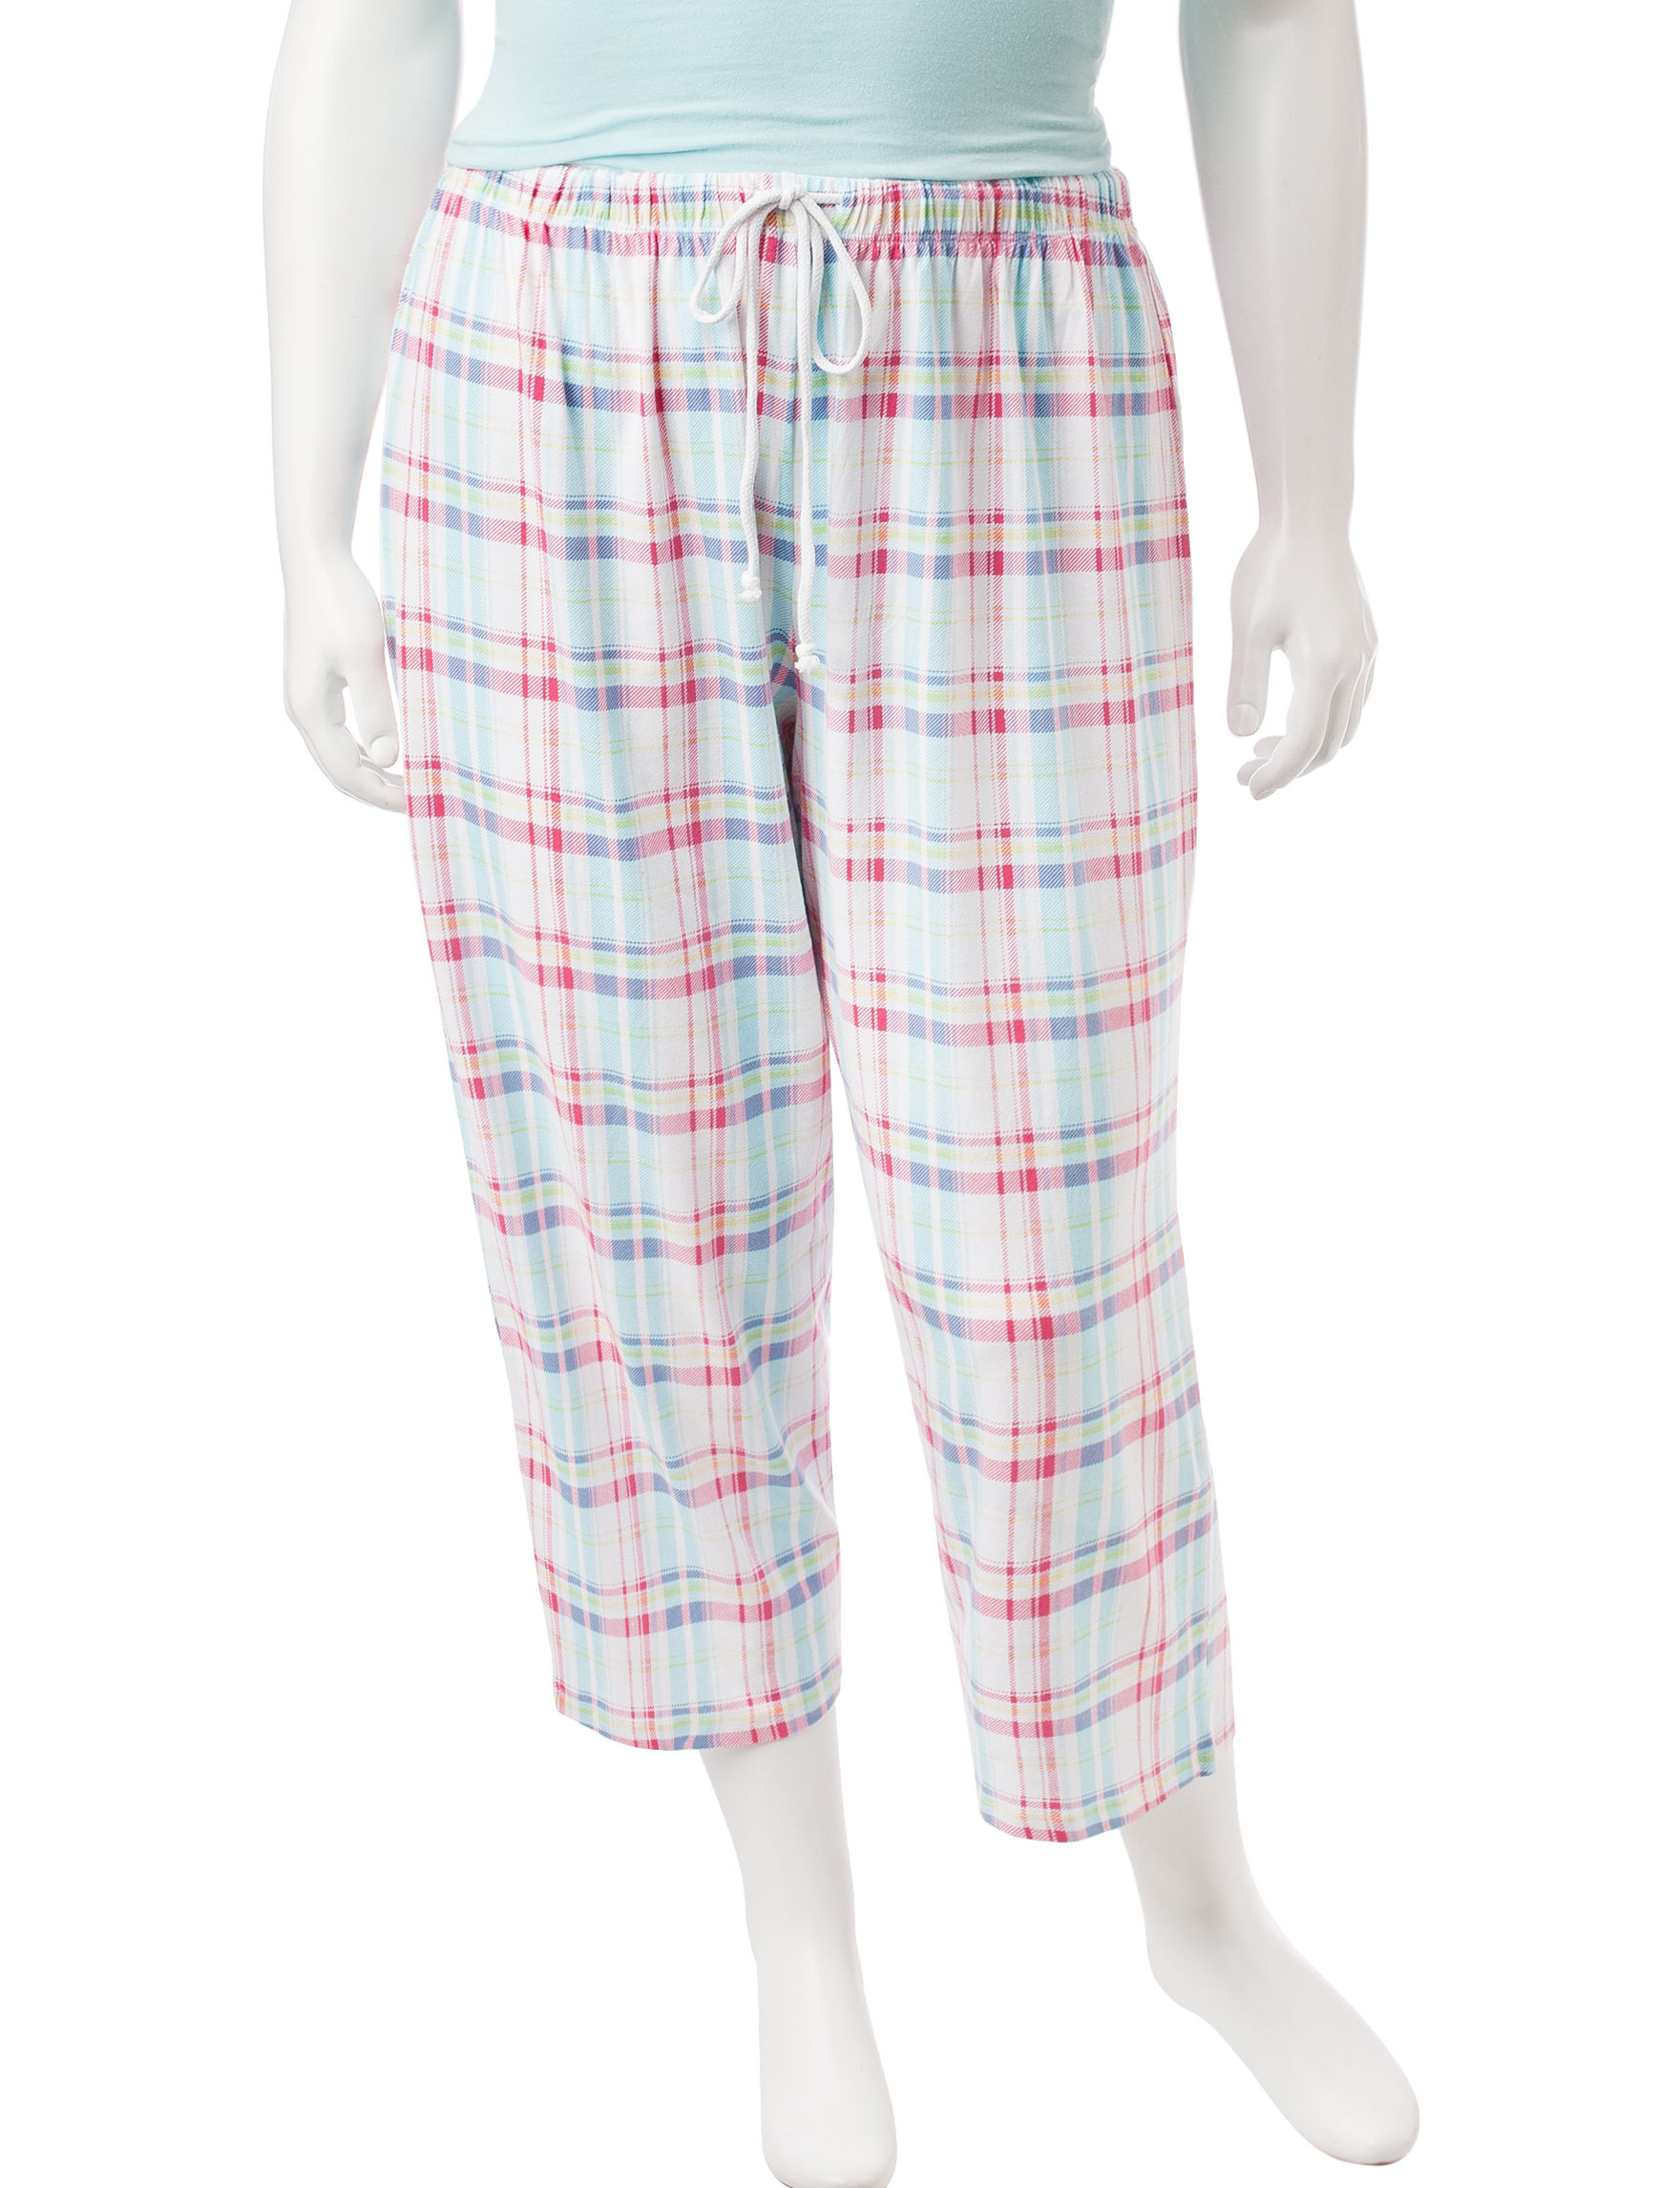 Jockey White / Black Pajama Bottoms